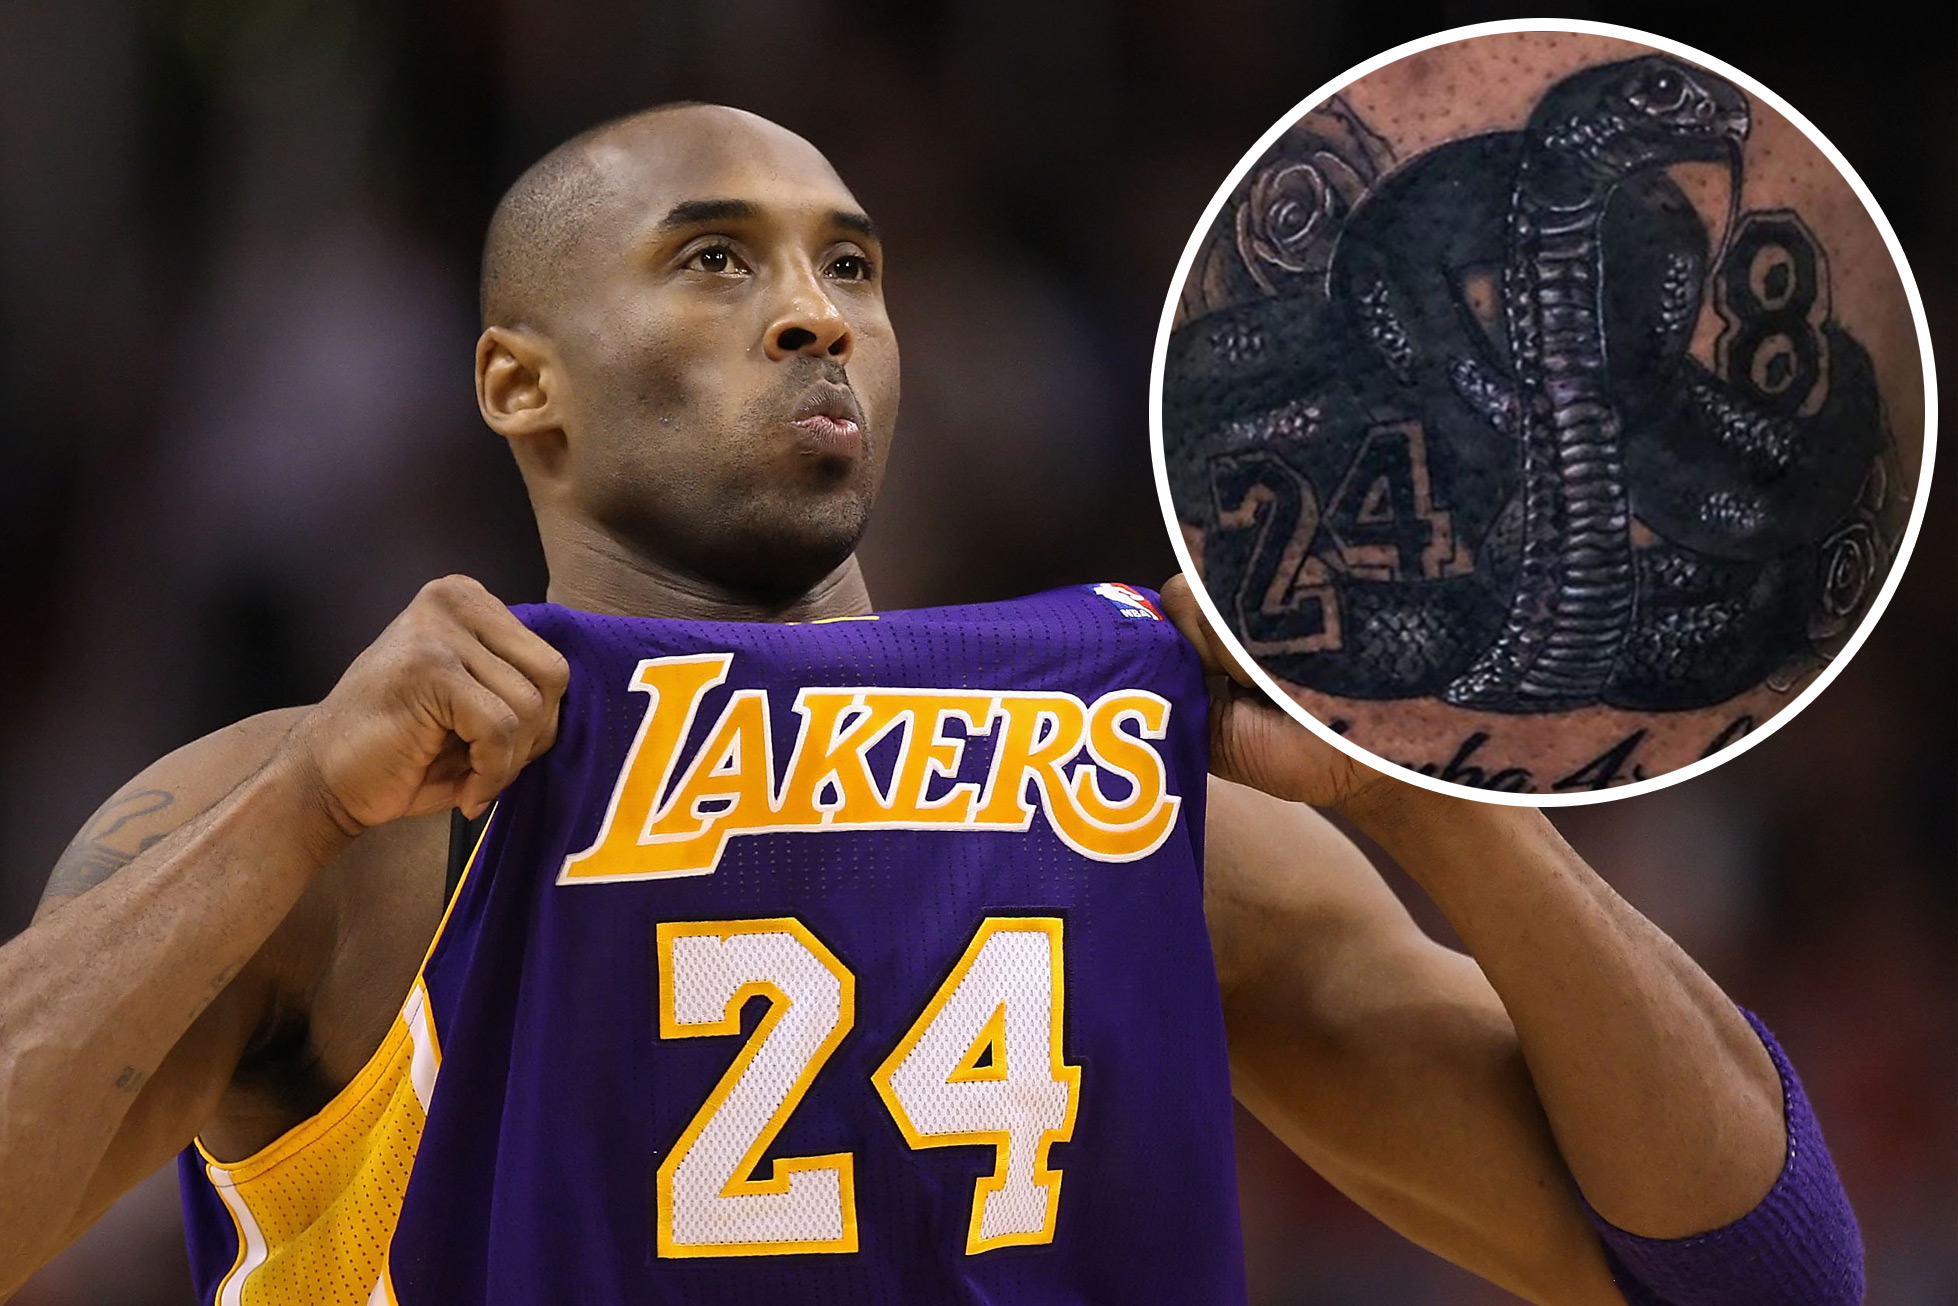 Celebrities pay tribute to Kobe and Gianna Bryant with tattoos